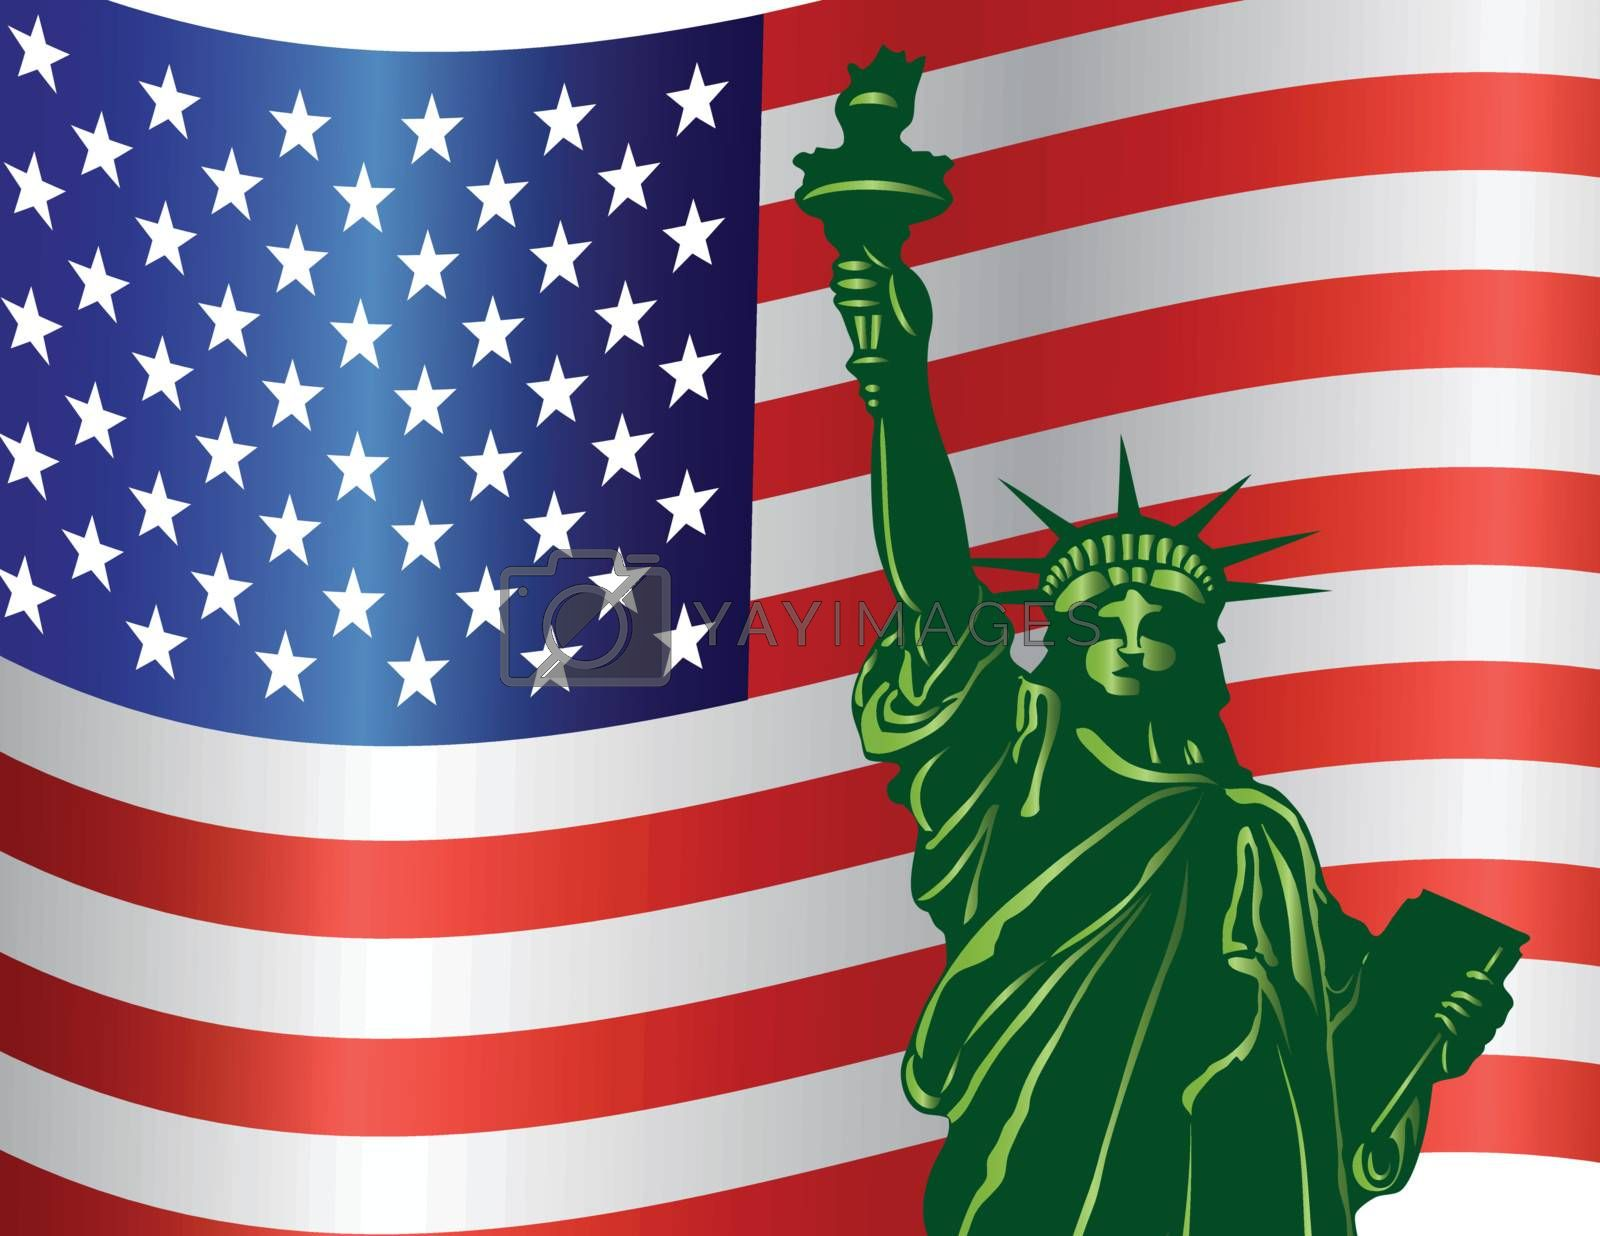 Fourth of July Independence Day Statue of Liberty with USA American Flag Illustration